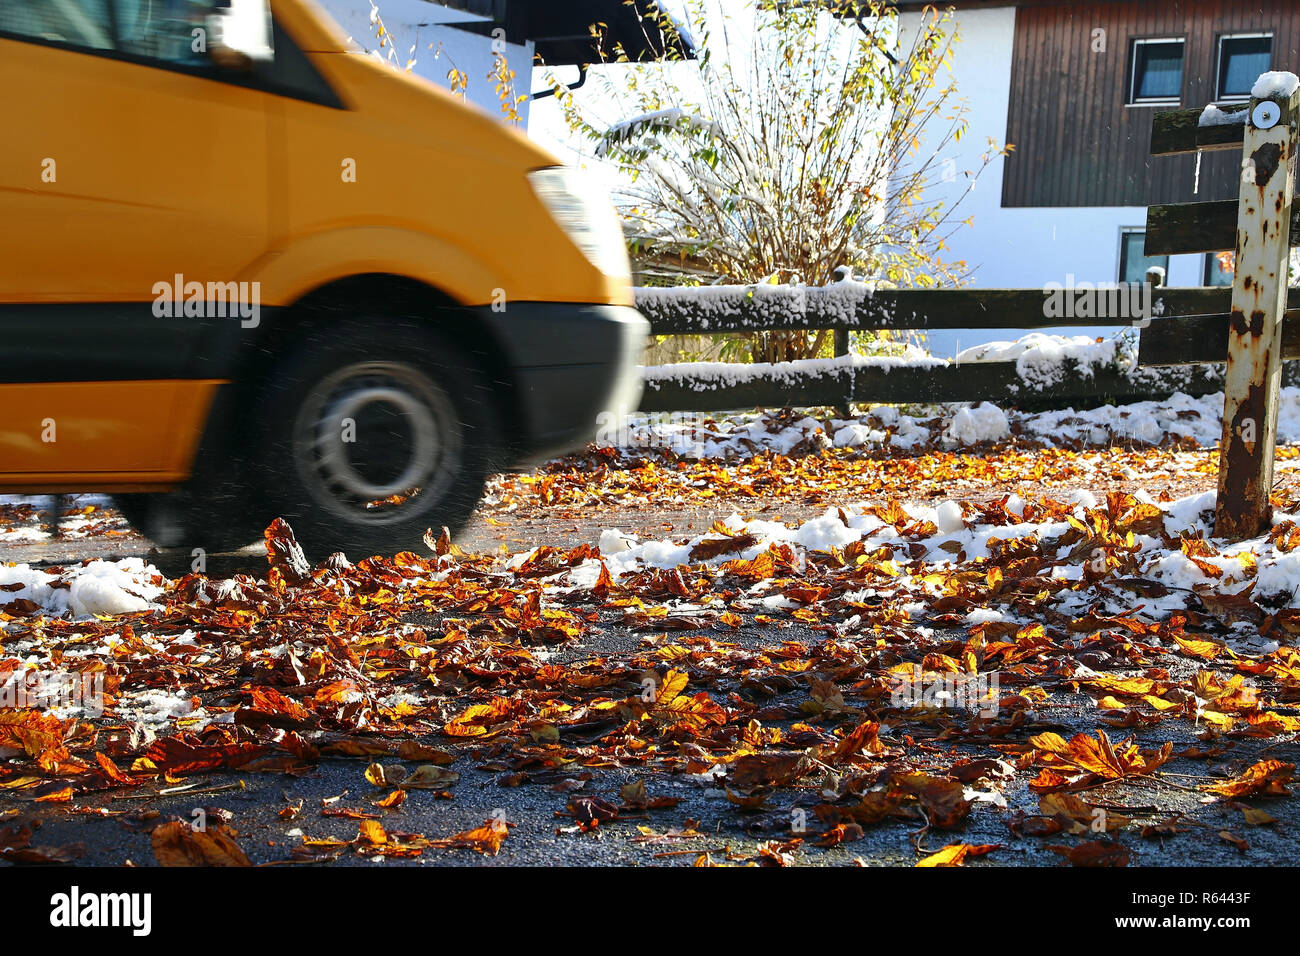 danger of accident due to wet leaves and snow in traffic Stock Photo